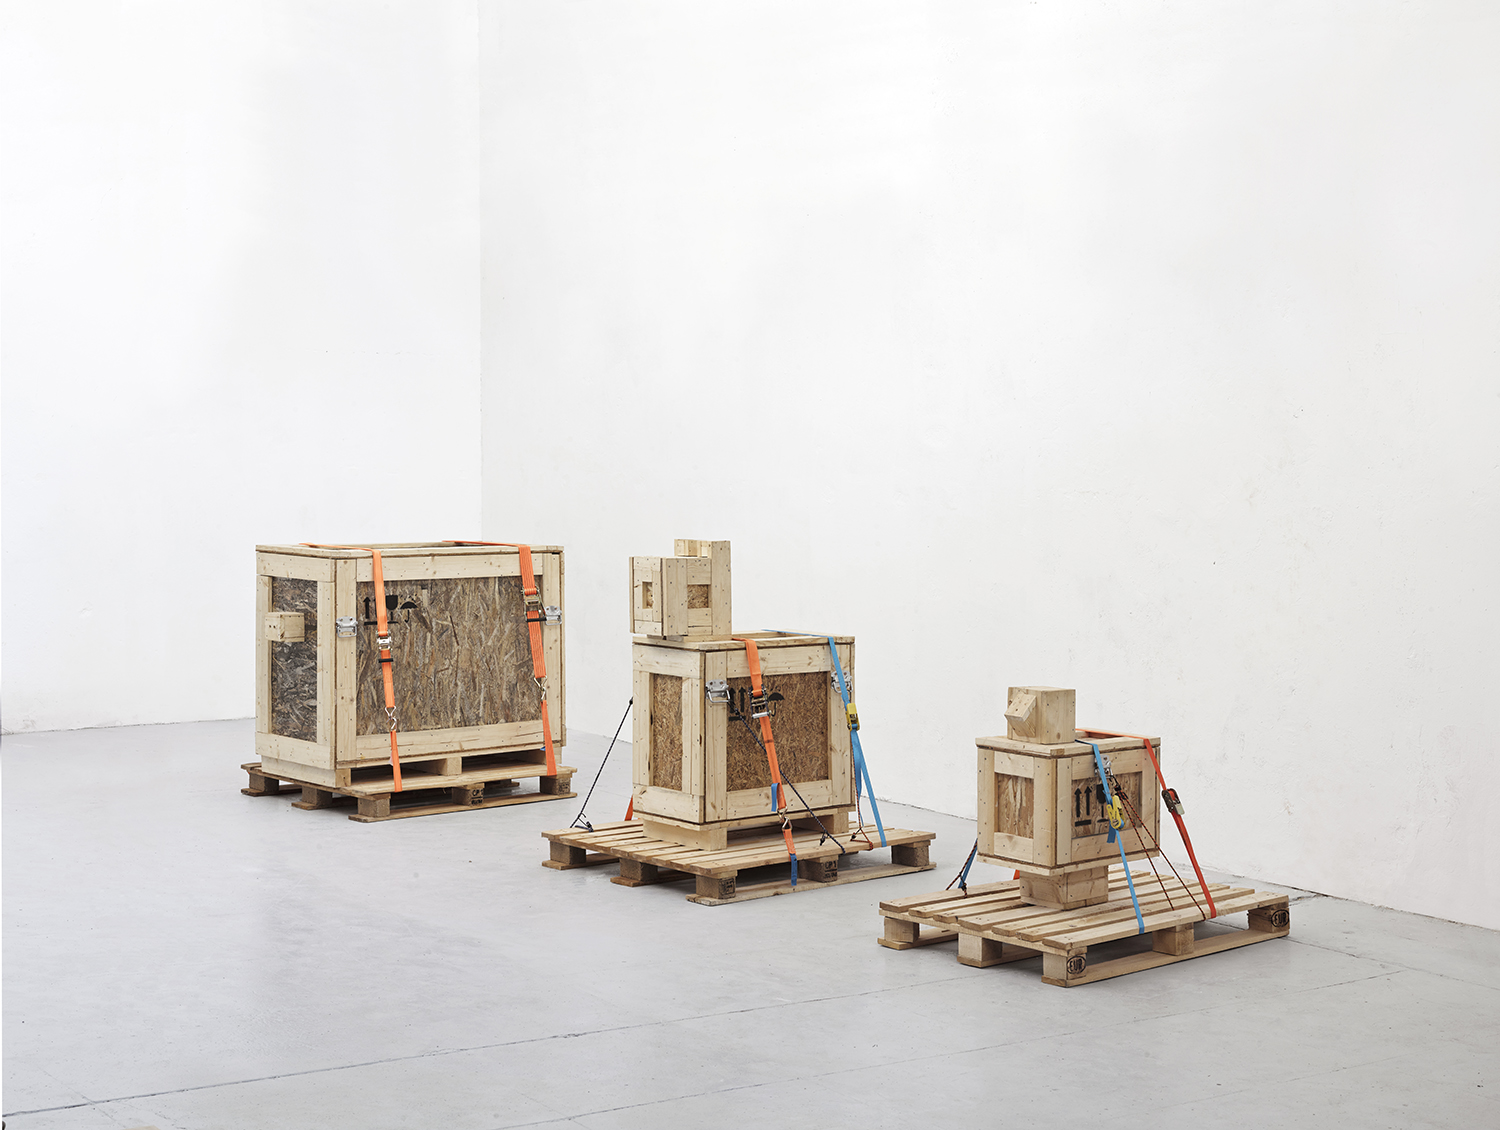 "Dan Vezentan ""Tightening the Straps on the New Rafts"", 2016. Wood, euro pallets, straps, plywood, handles"